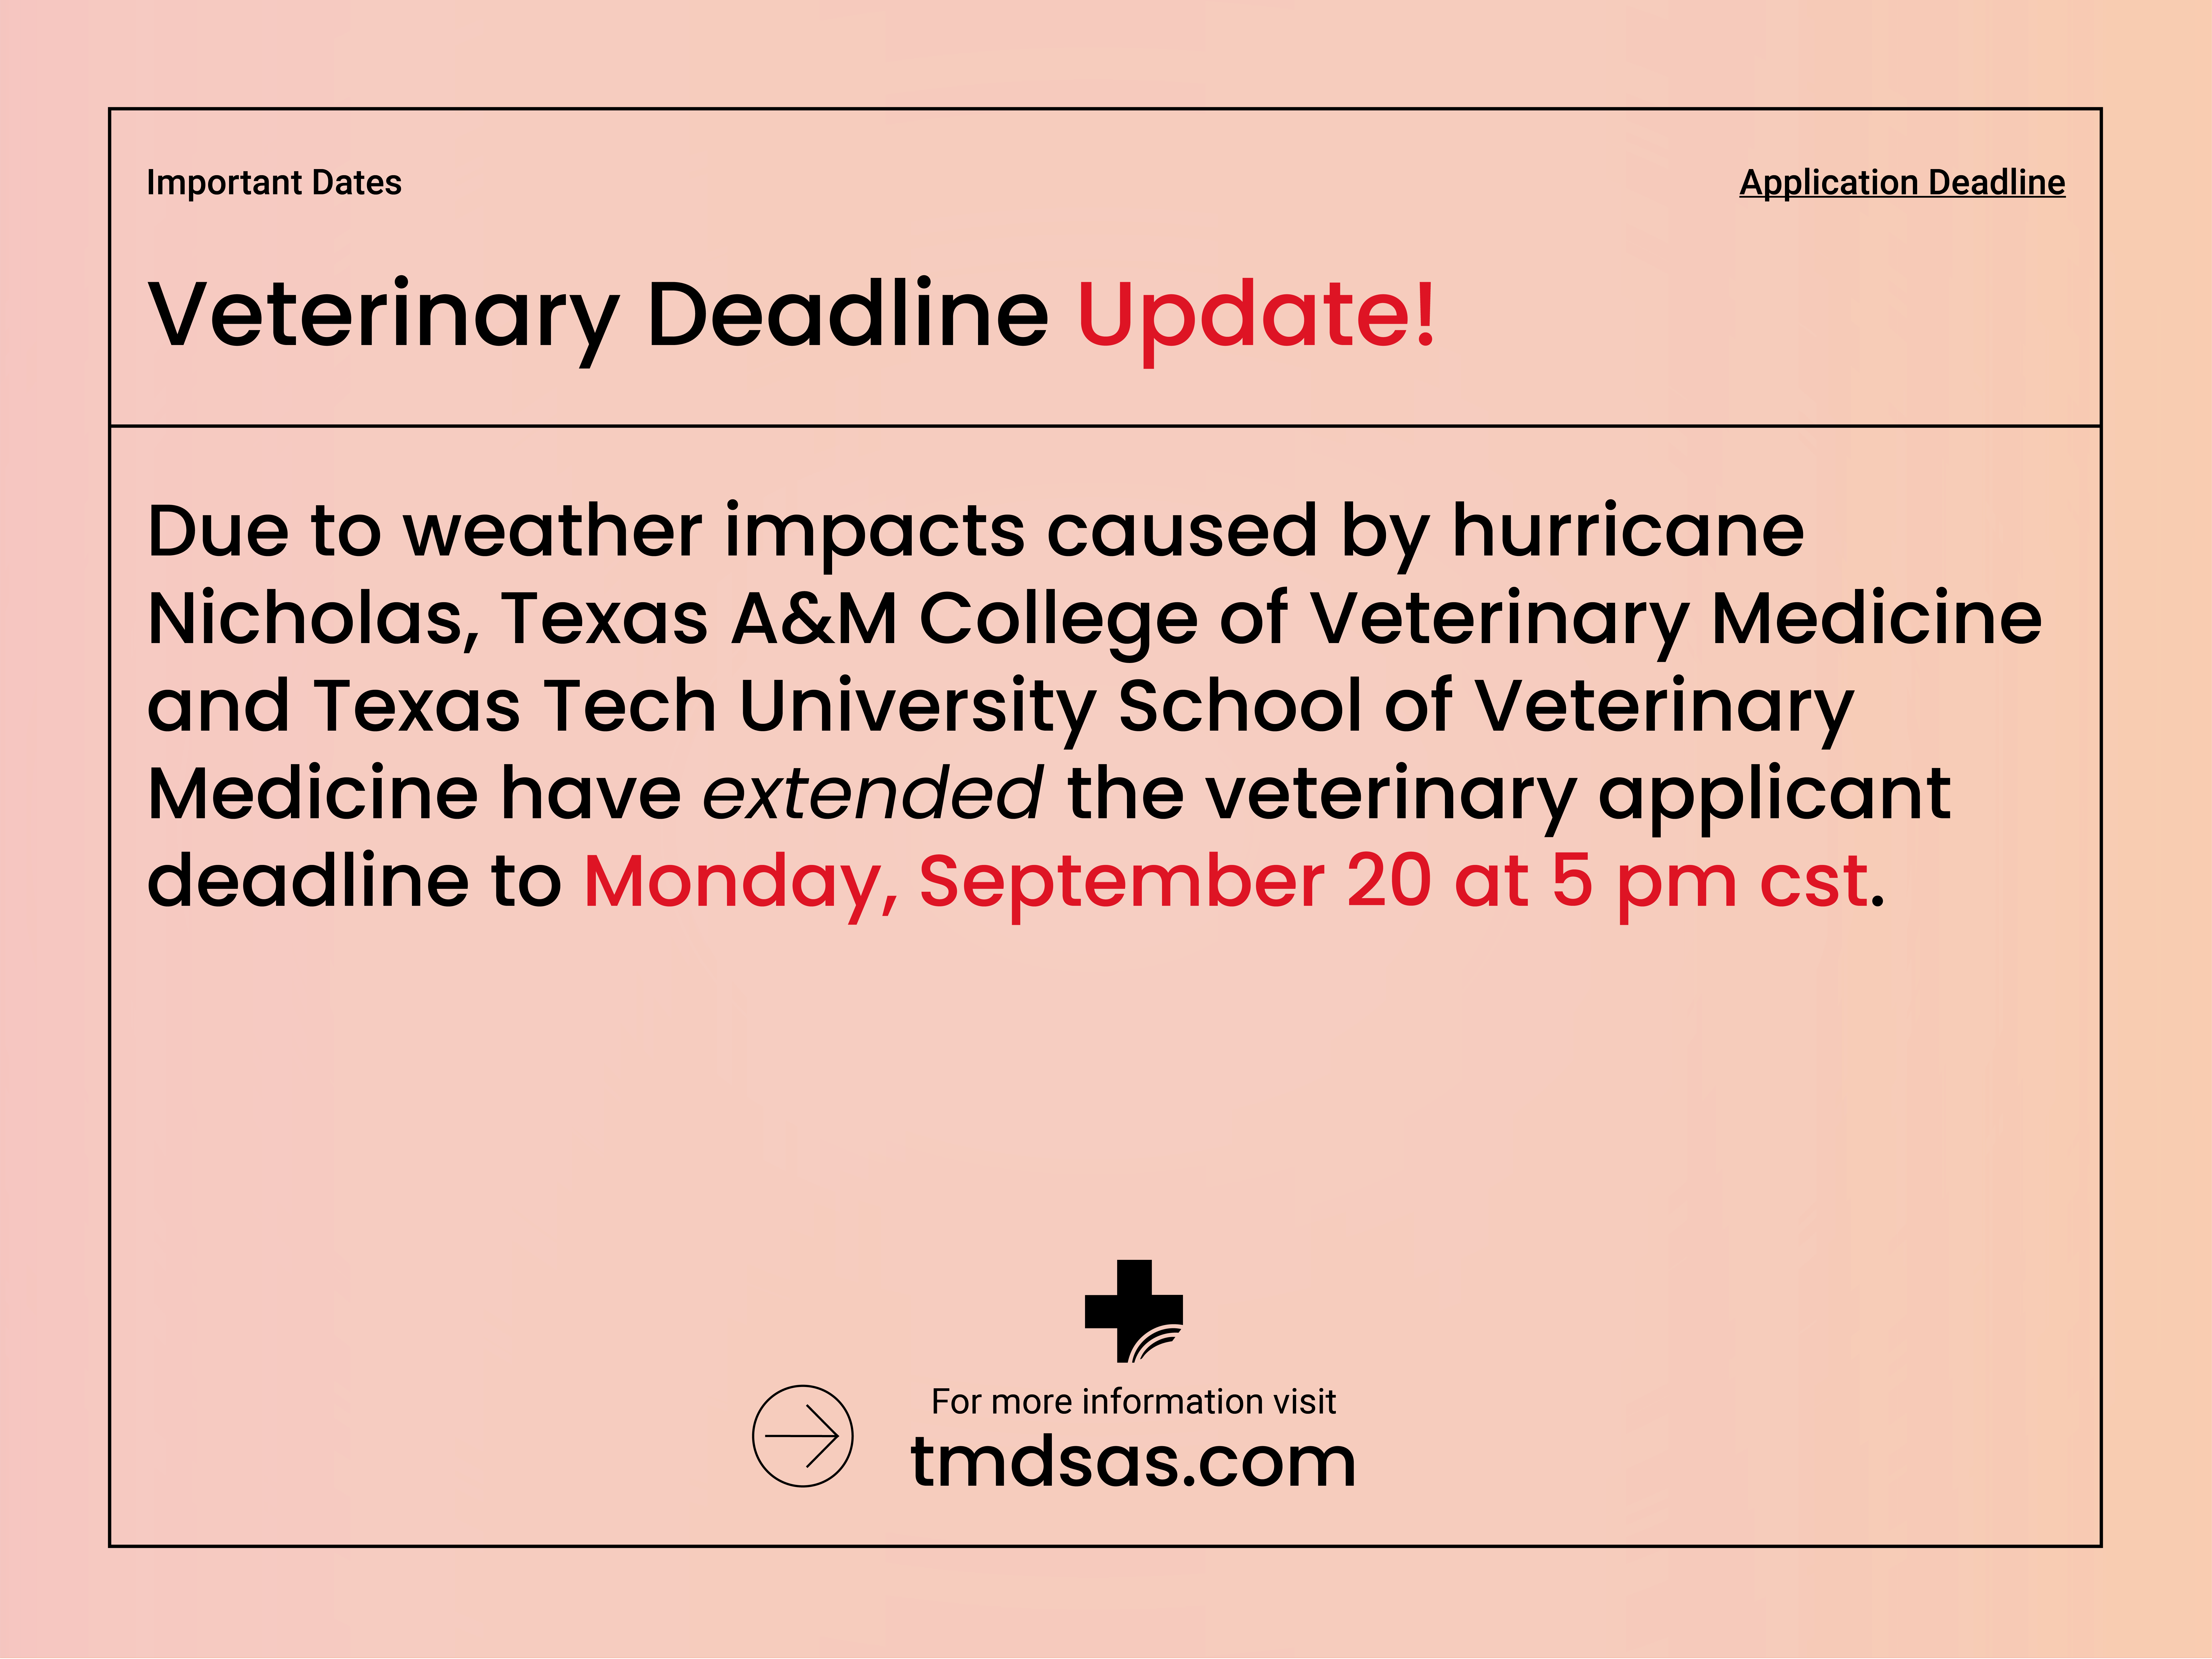 Due to weather impacts caused by Hurricane Nicholas, Texas A&M College of Veterinary Medicine and Texas Tech University School of Veterinary Medicine have extended the Veterinary Applicant Deadline to Monday, September 20 at 5 pm CST